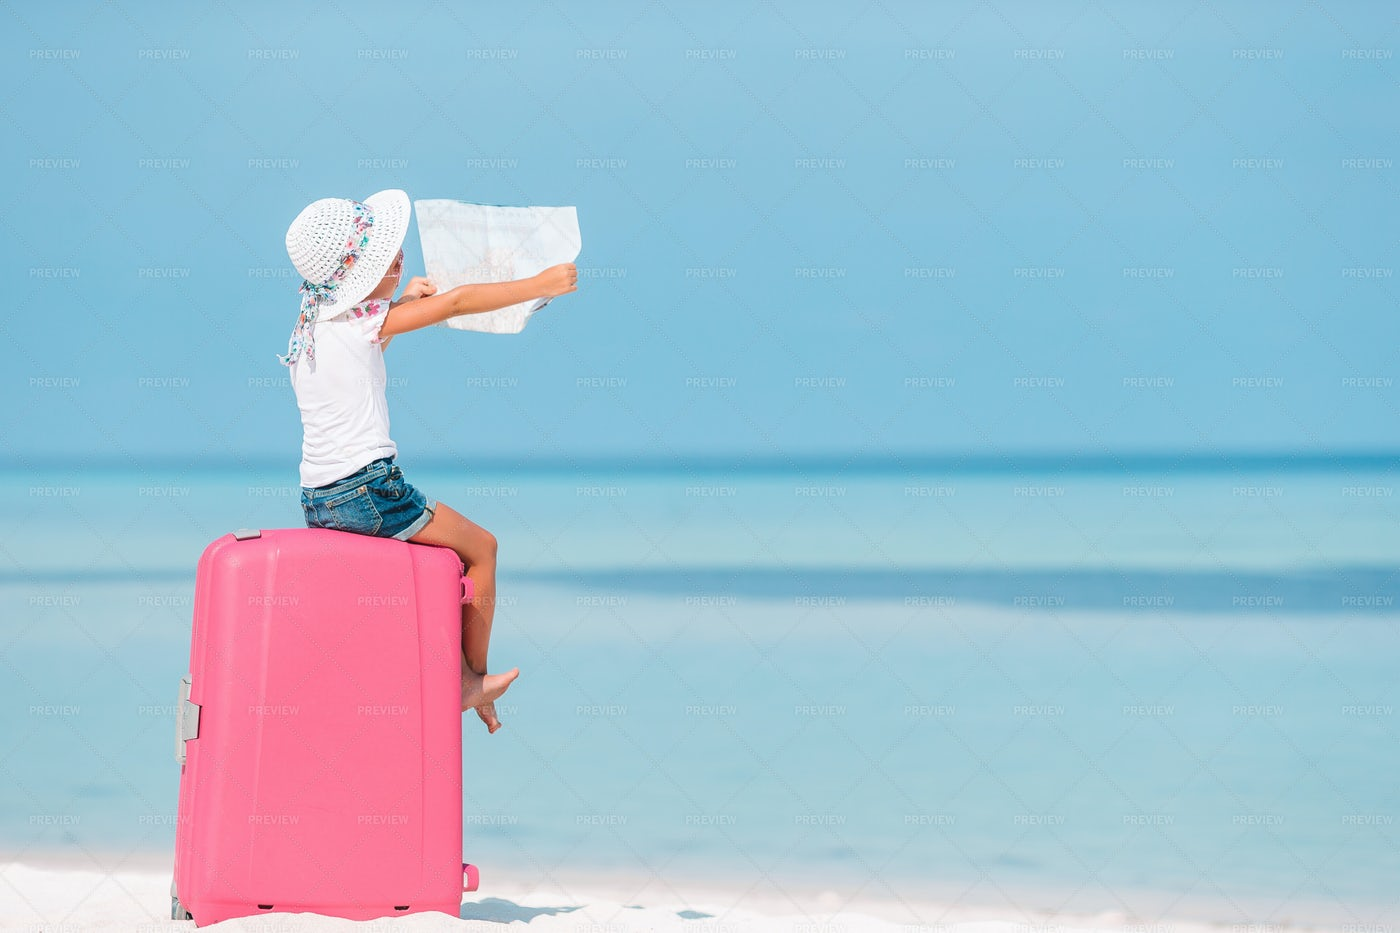 Traveling To The Beach: Stock Photos